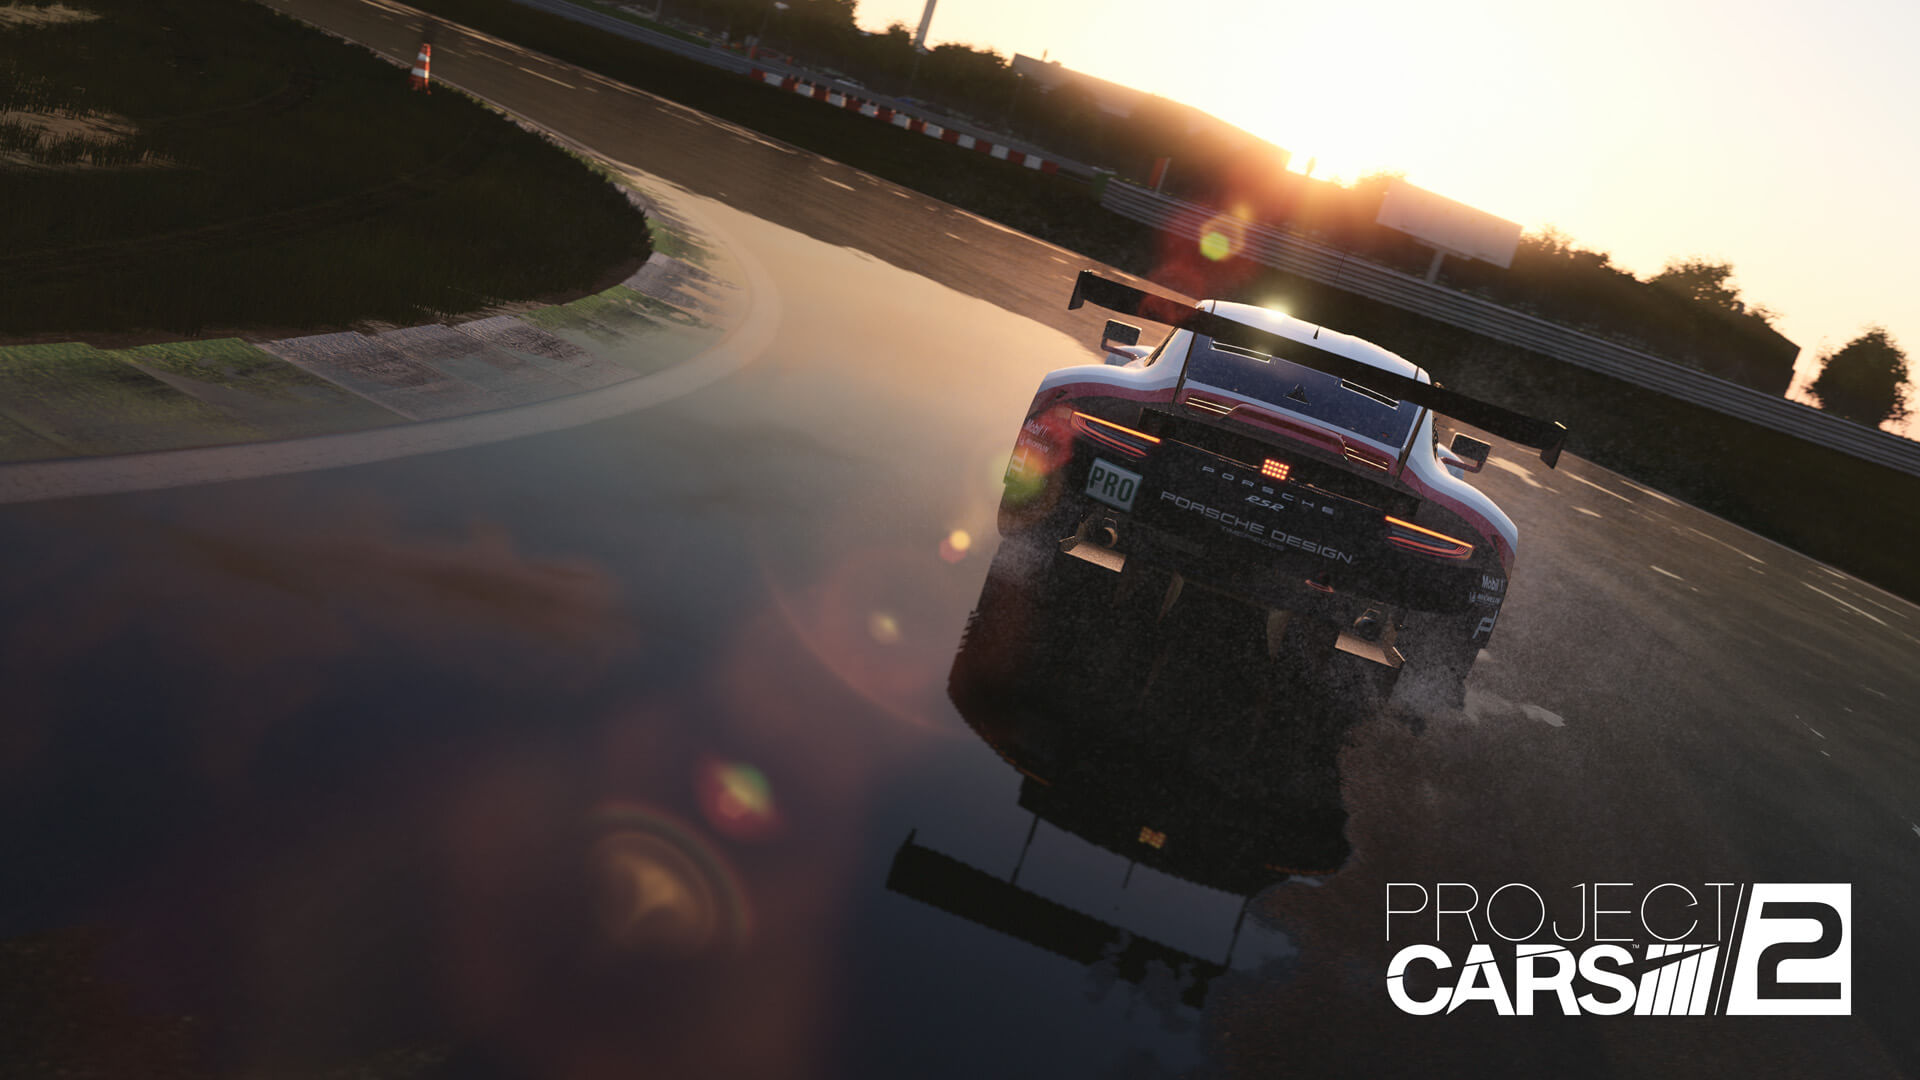 Project CARS 2 Launched On September 22nd 2017 Xbox One PlayStation 4 And PC It Also Takes Advantage Of X PS4 Pro To Offer Three